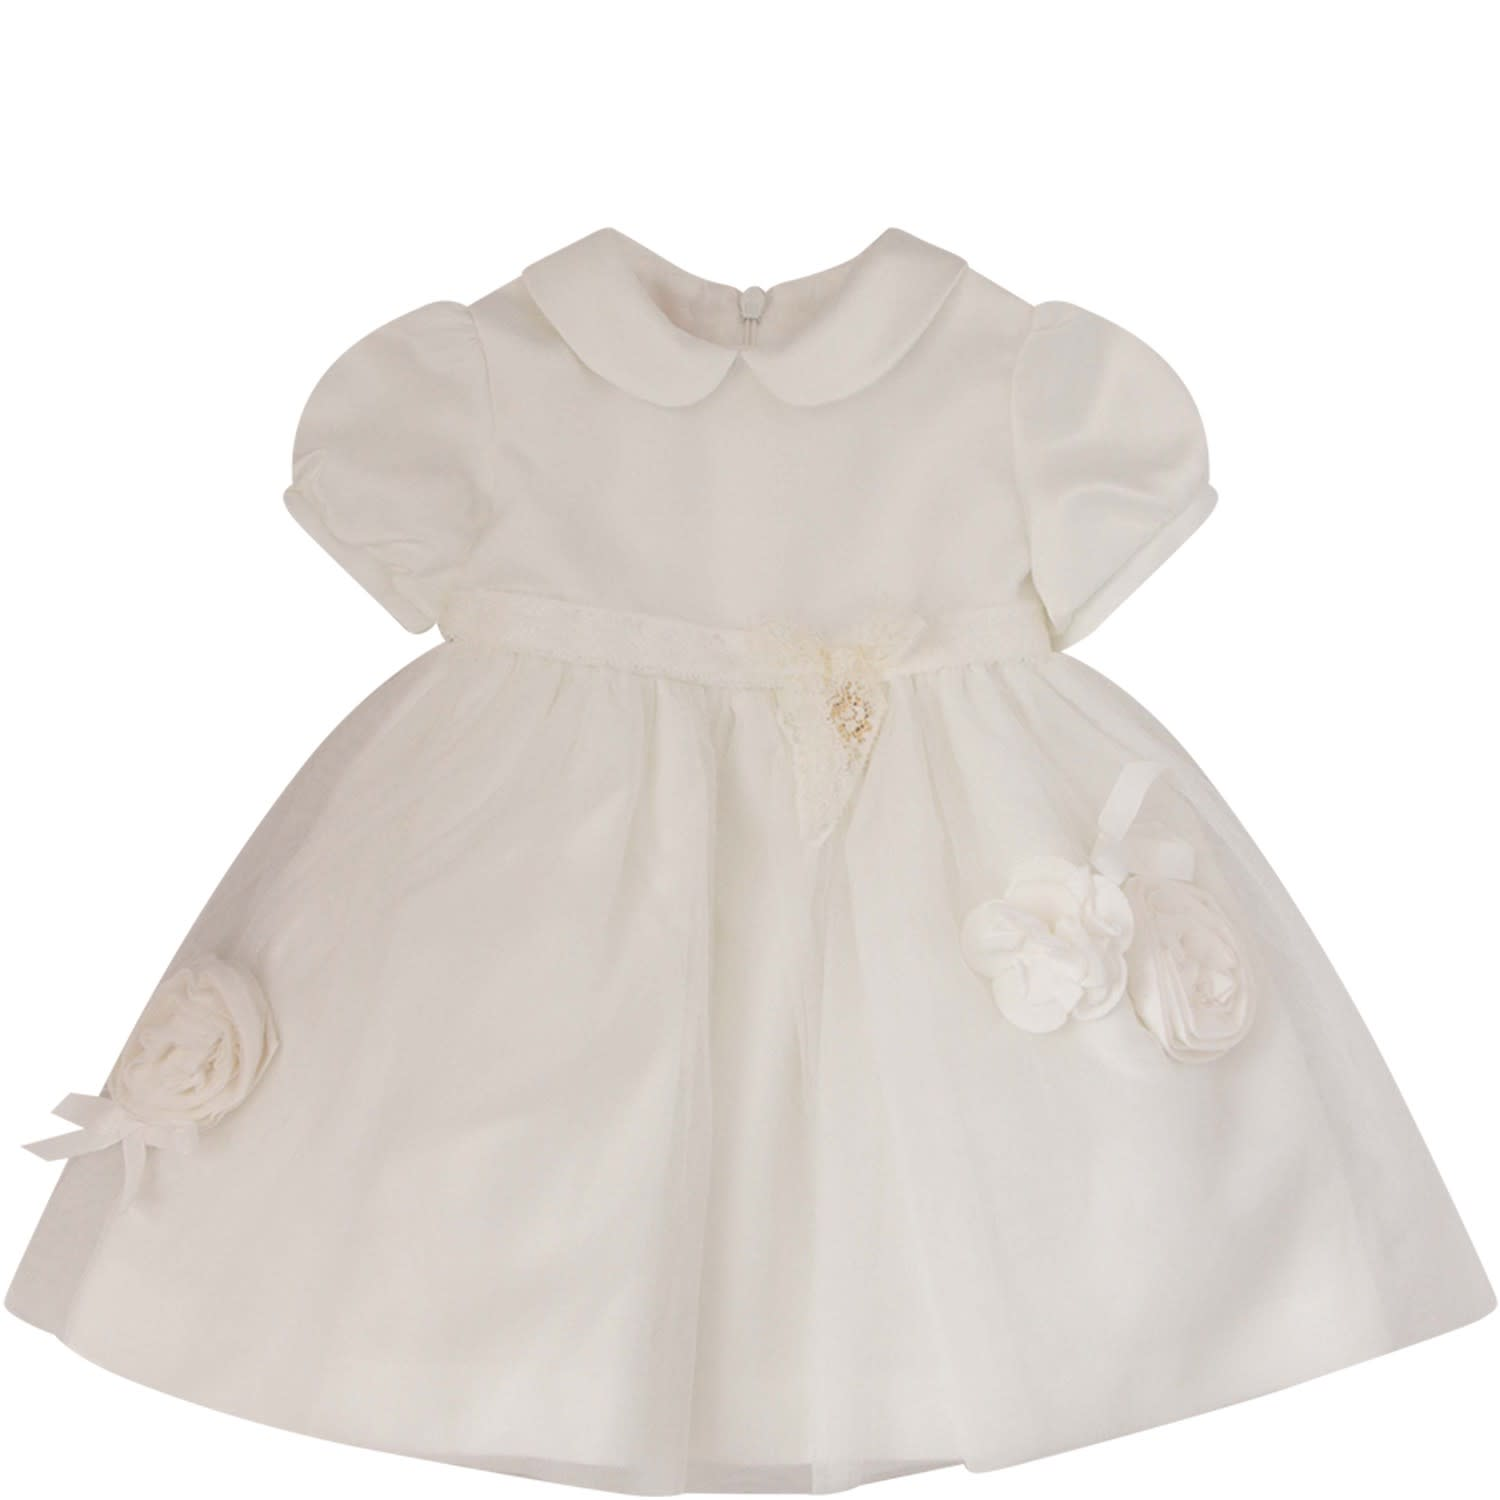 Blumarine White Dress With Tulle Flowers And Bows